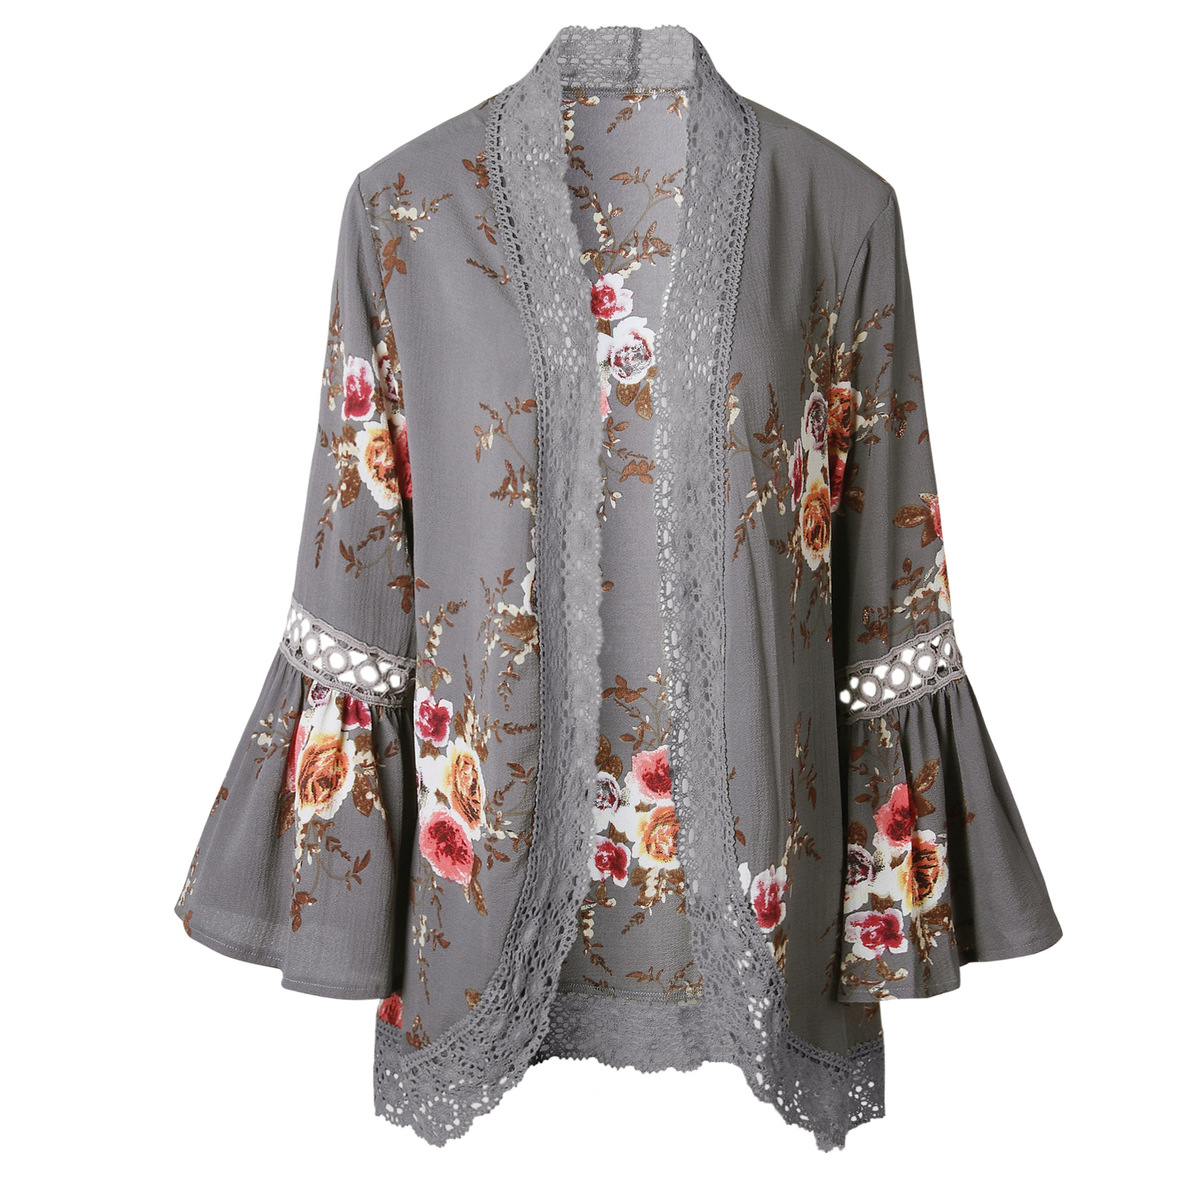 Women Plus Size Loose Casual Basic Jackets Female 2018 Autumn Long Flare Sleeve Floral Print Outwear Coat Open Stitch Clothing